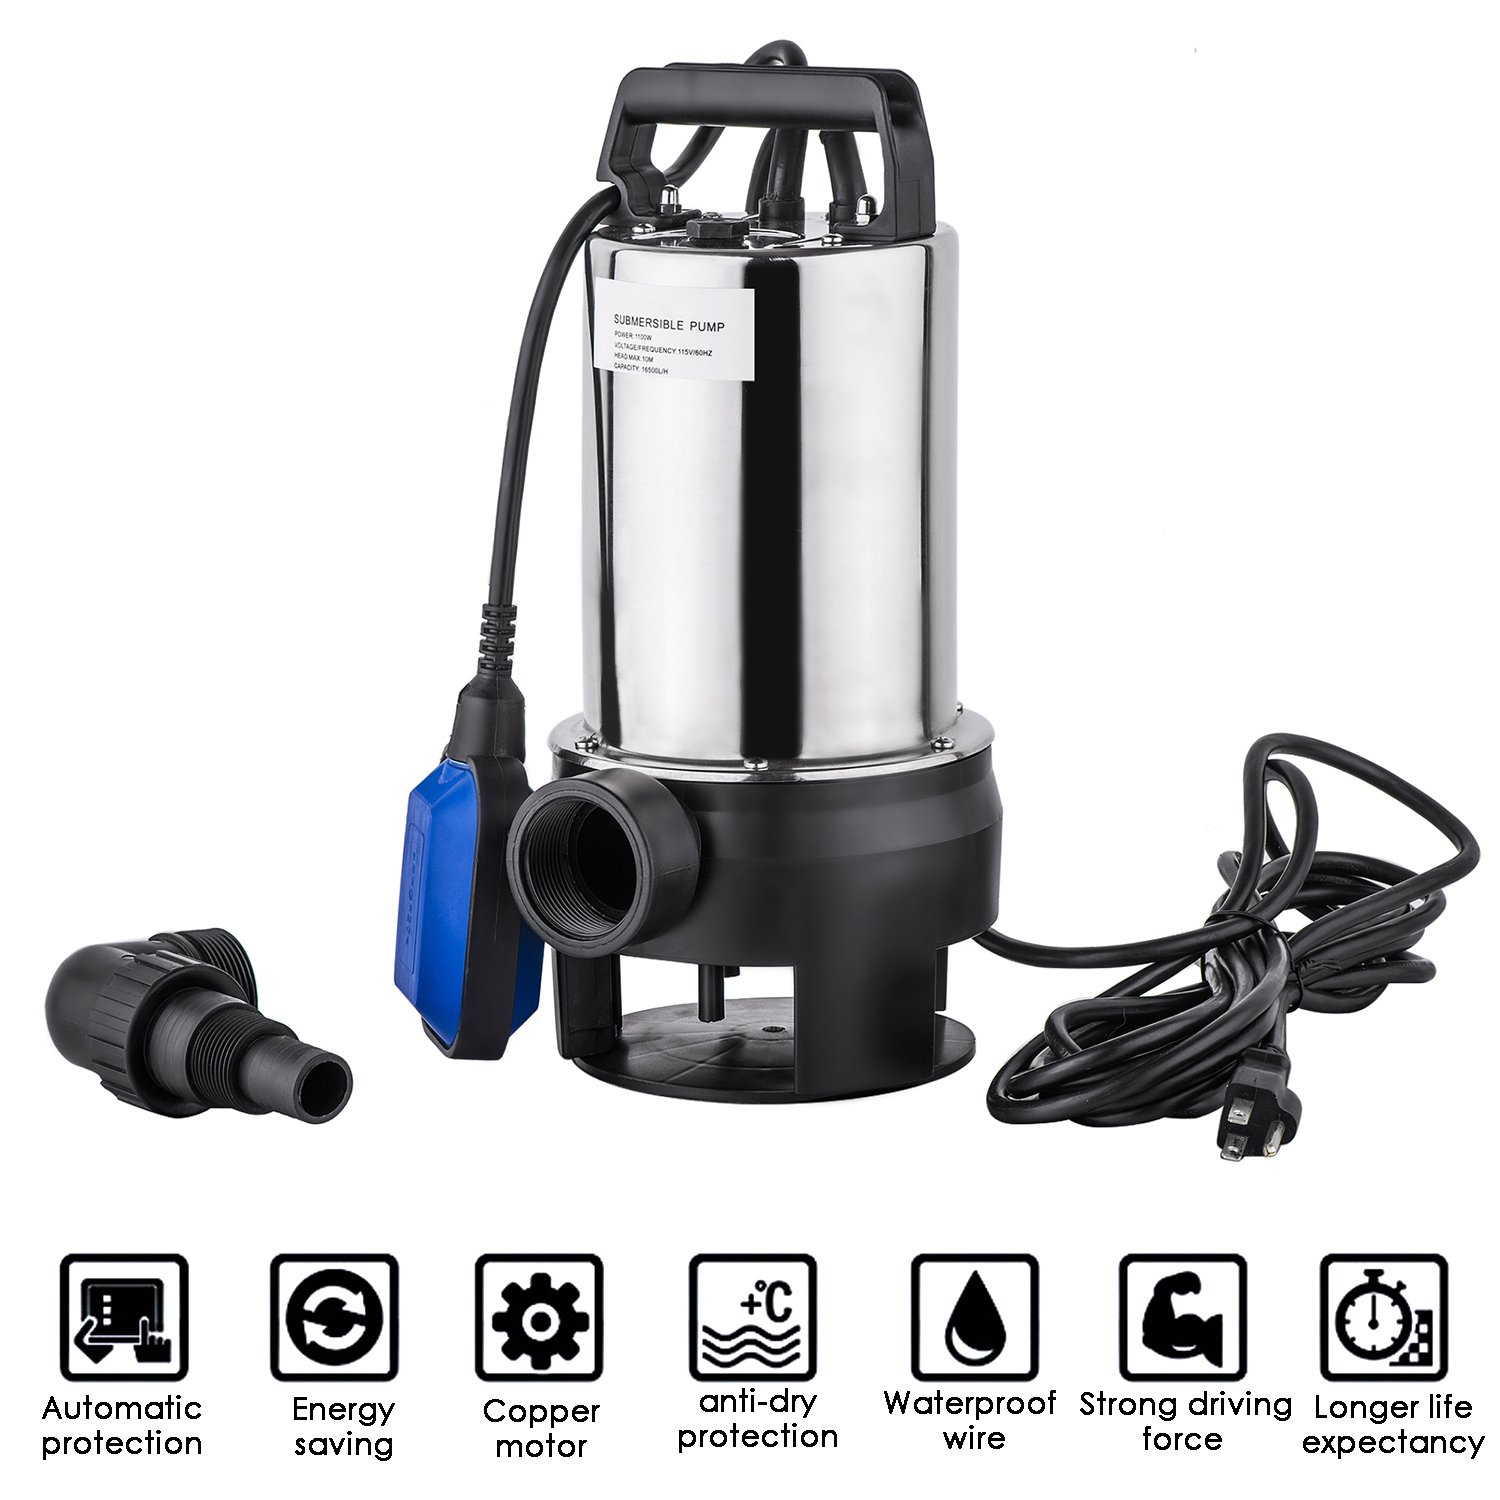 1.5 HP Stainless Steel Clean/Dirty Water Submersible Sump Pump Portable Transfer Water Pump Automatic Shut Off Float Switch with 33 Feet Cable (US Stock)